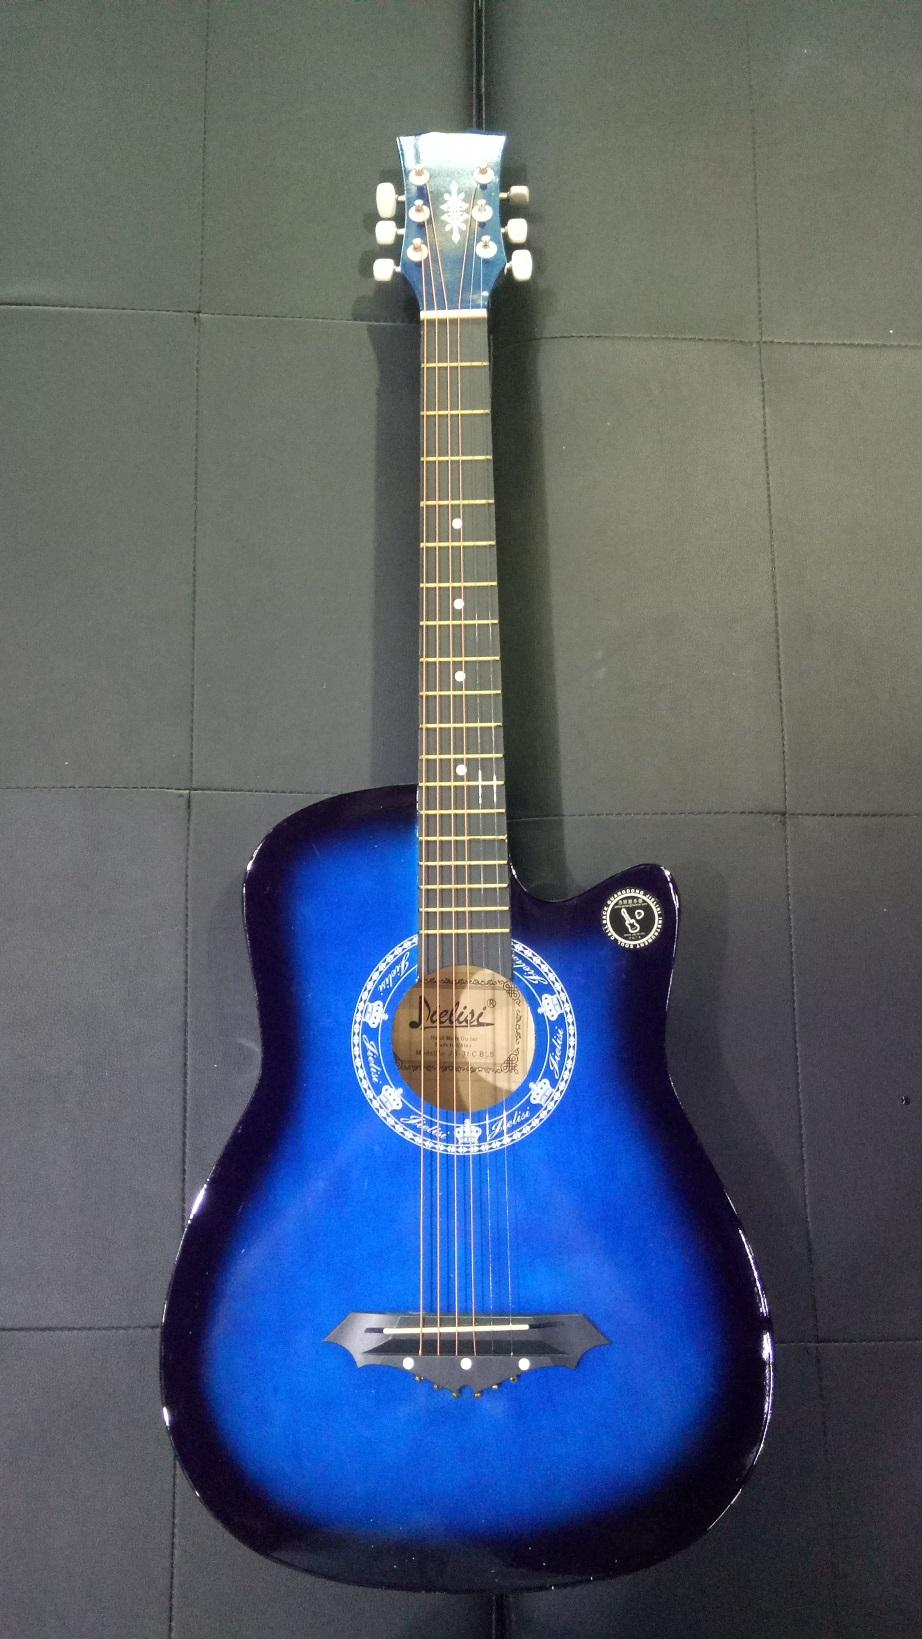 38 Inch Acoustic Folk 6-String Branded Practice Guitar for Beginners Students